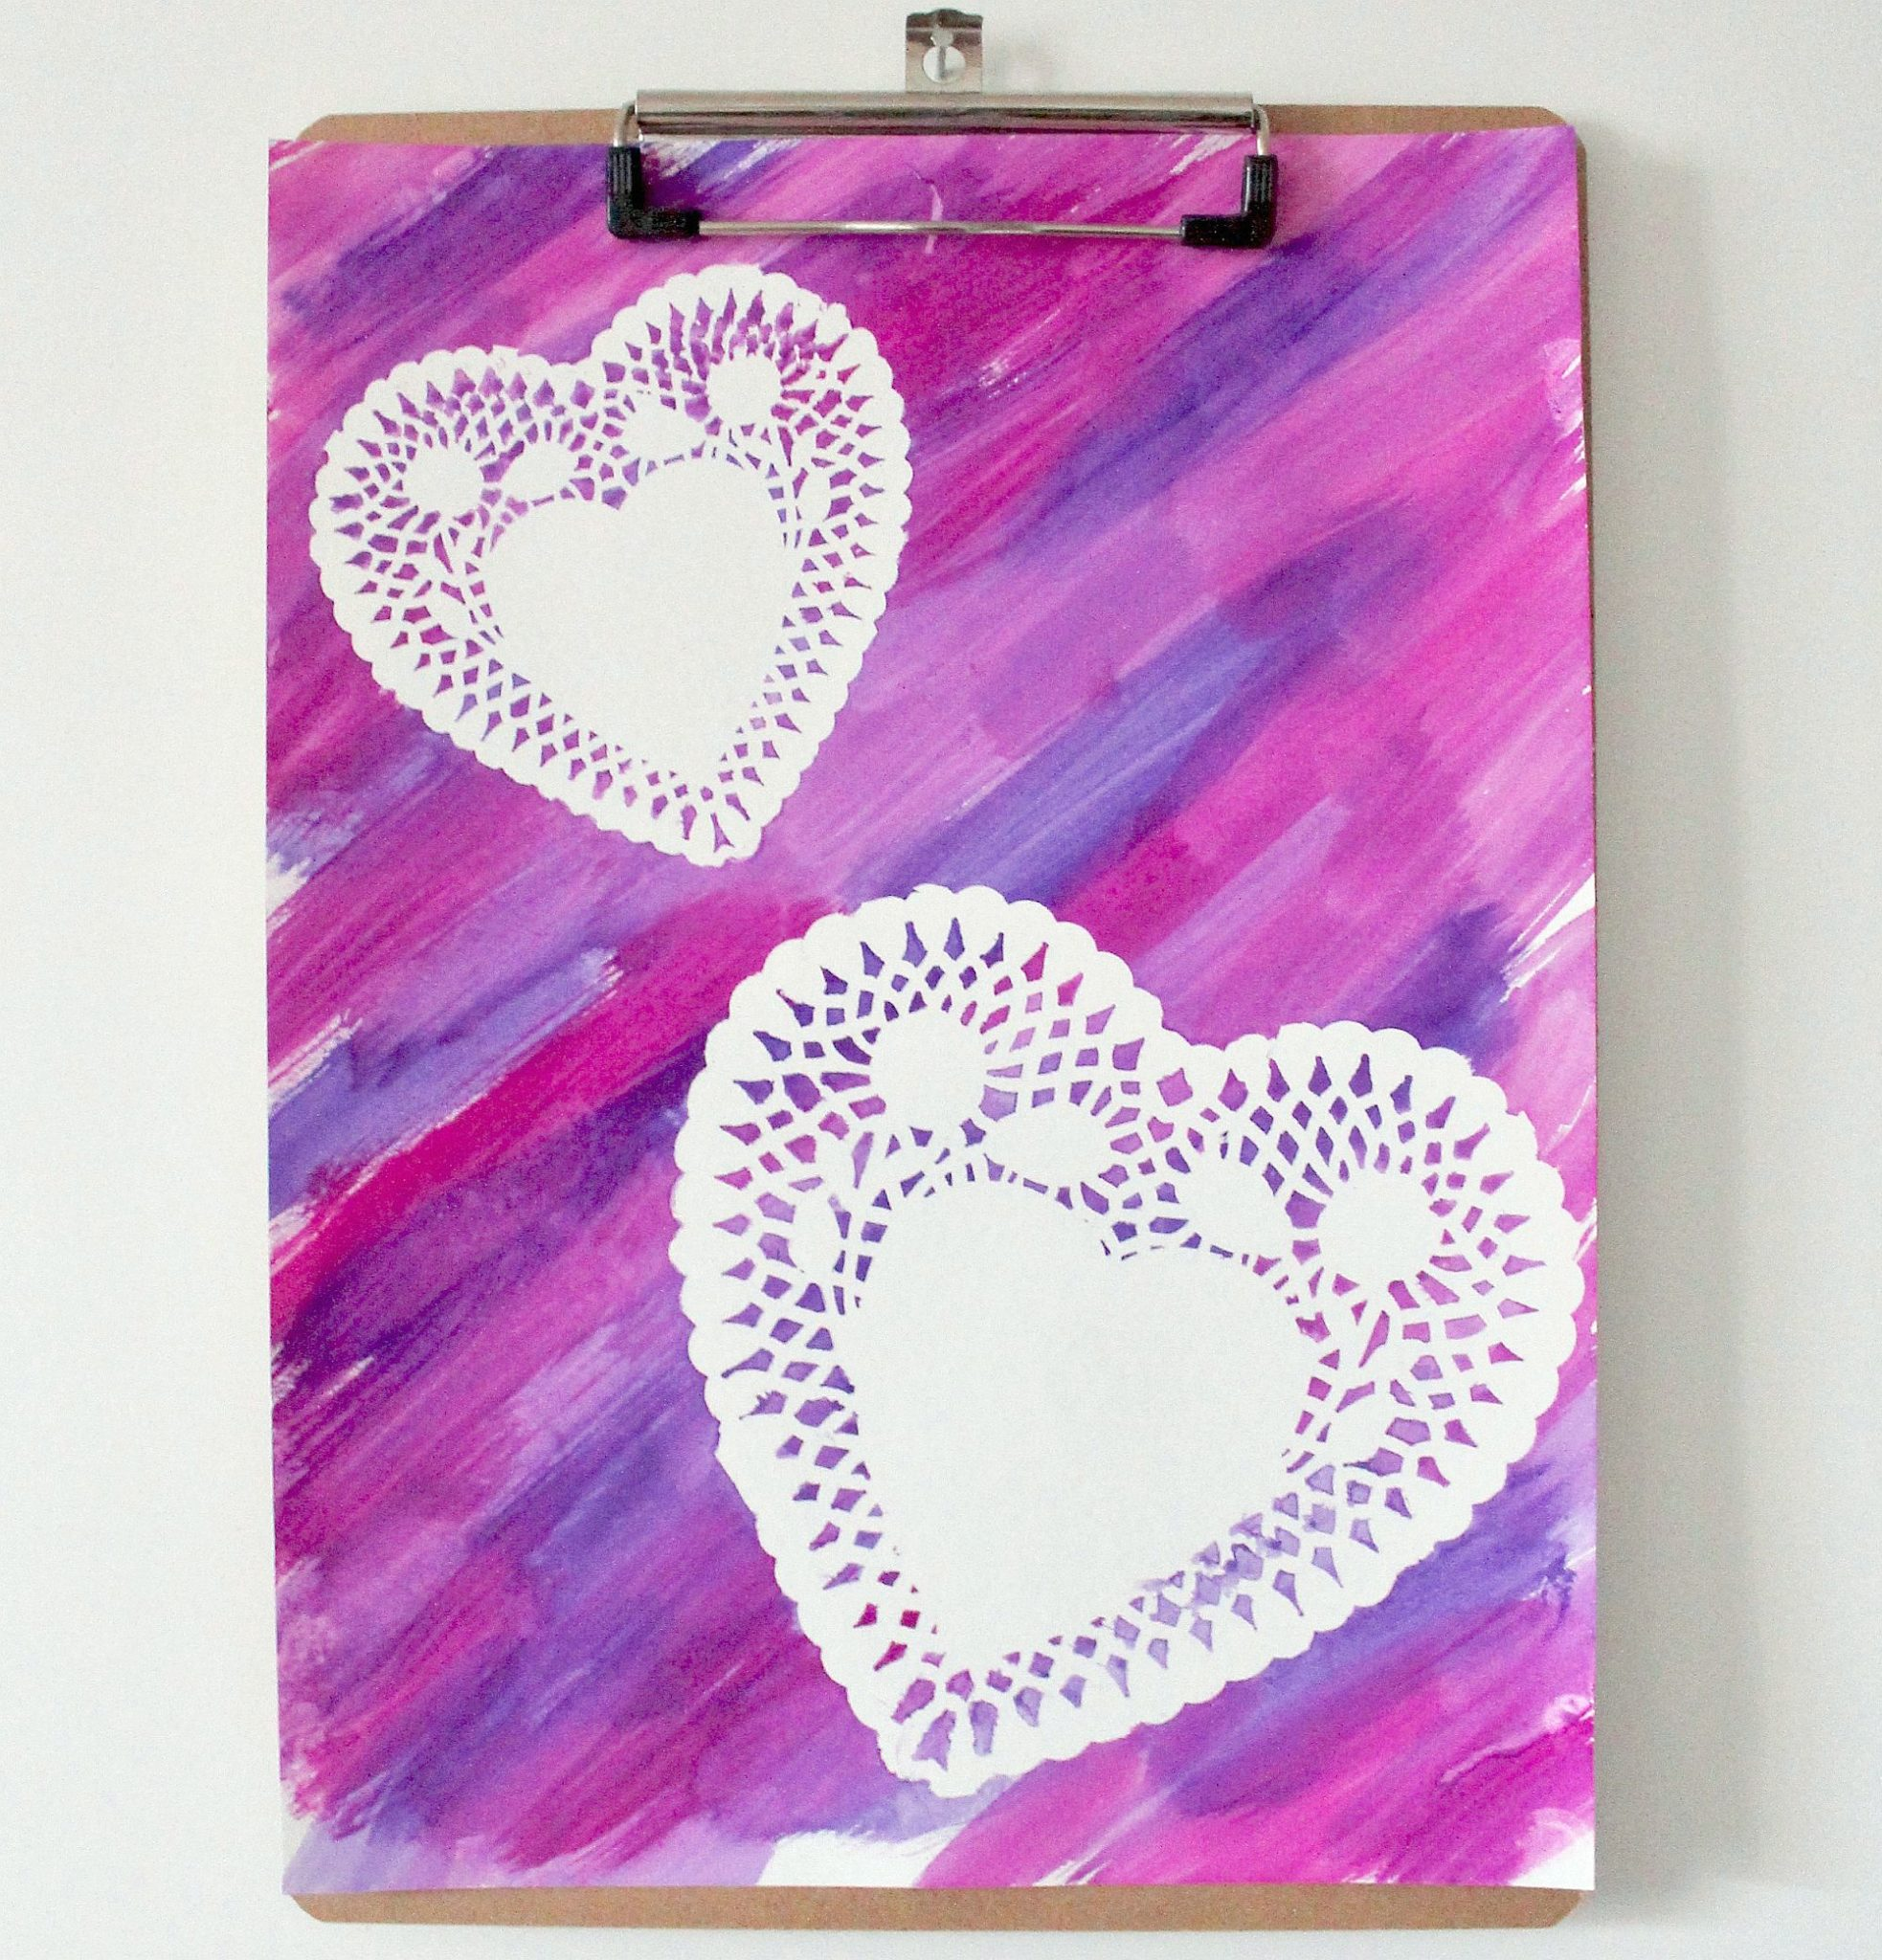 Doily-Heart-Painting-with-Purple-Panache